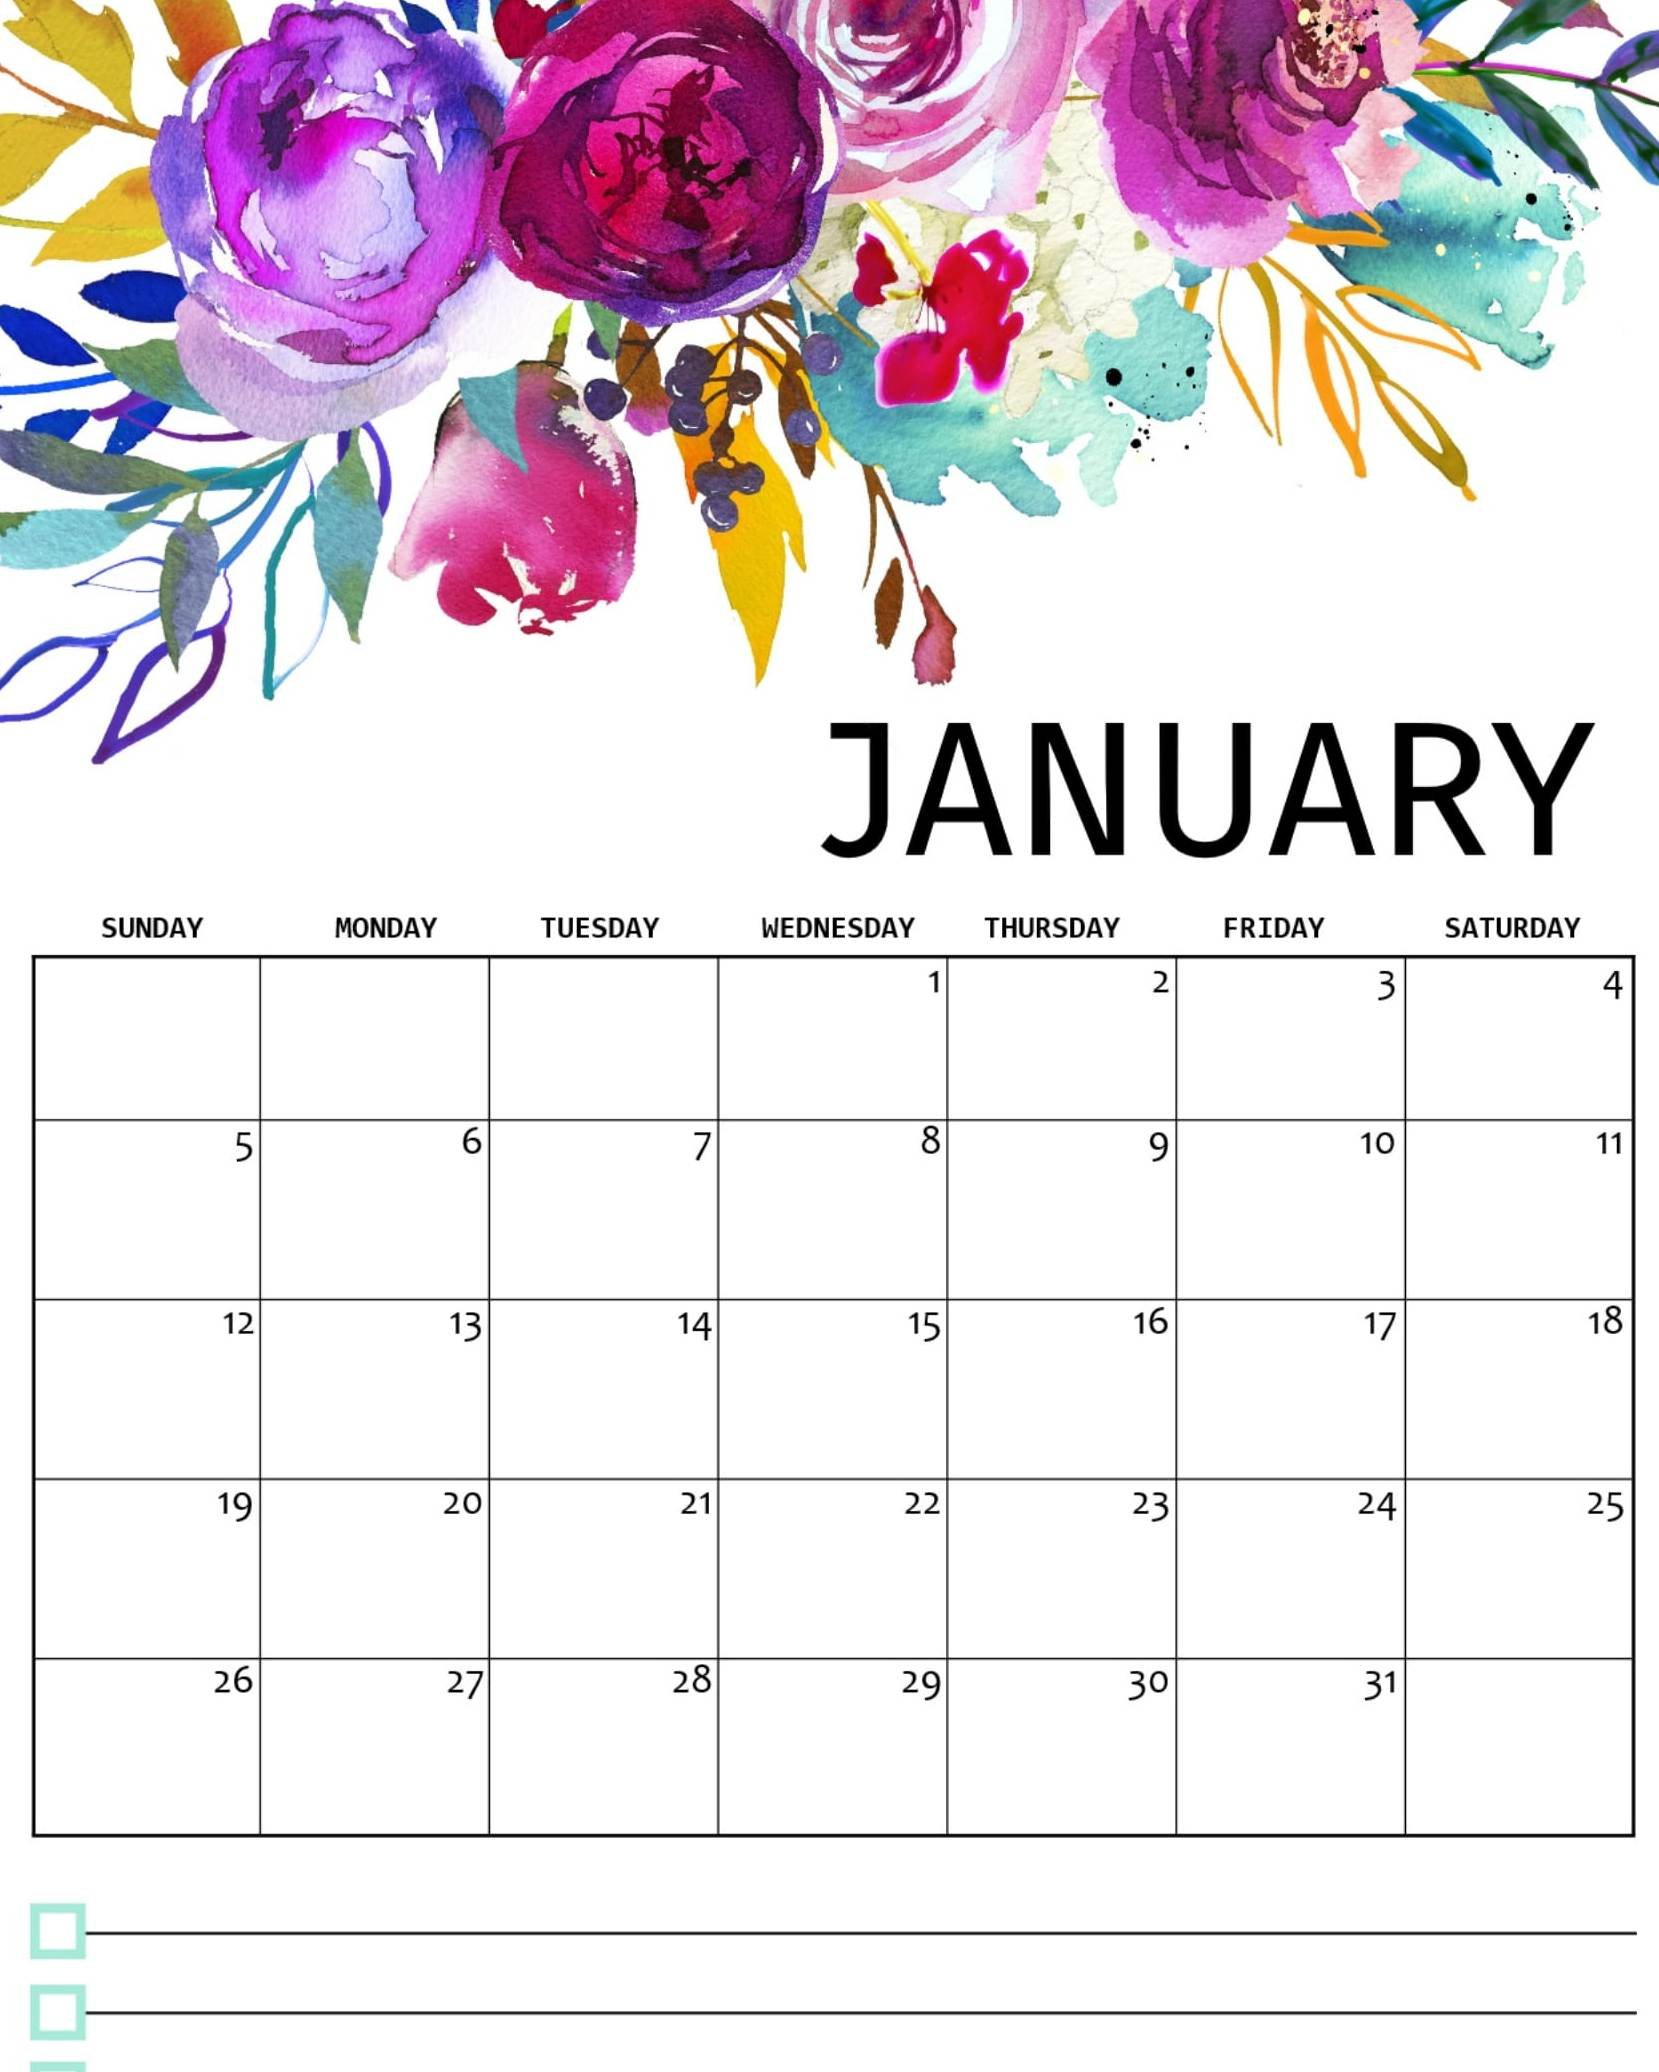 January 2020 Calendar Canada With Holidays & Notes - Set